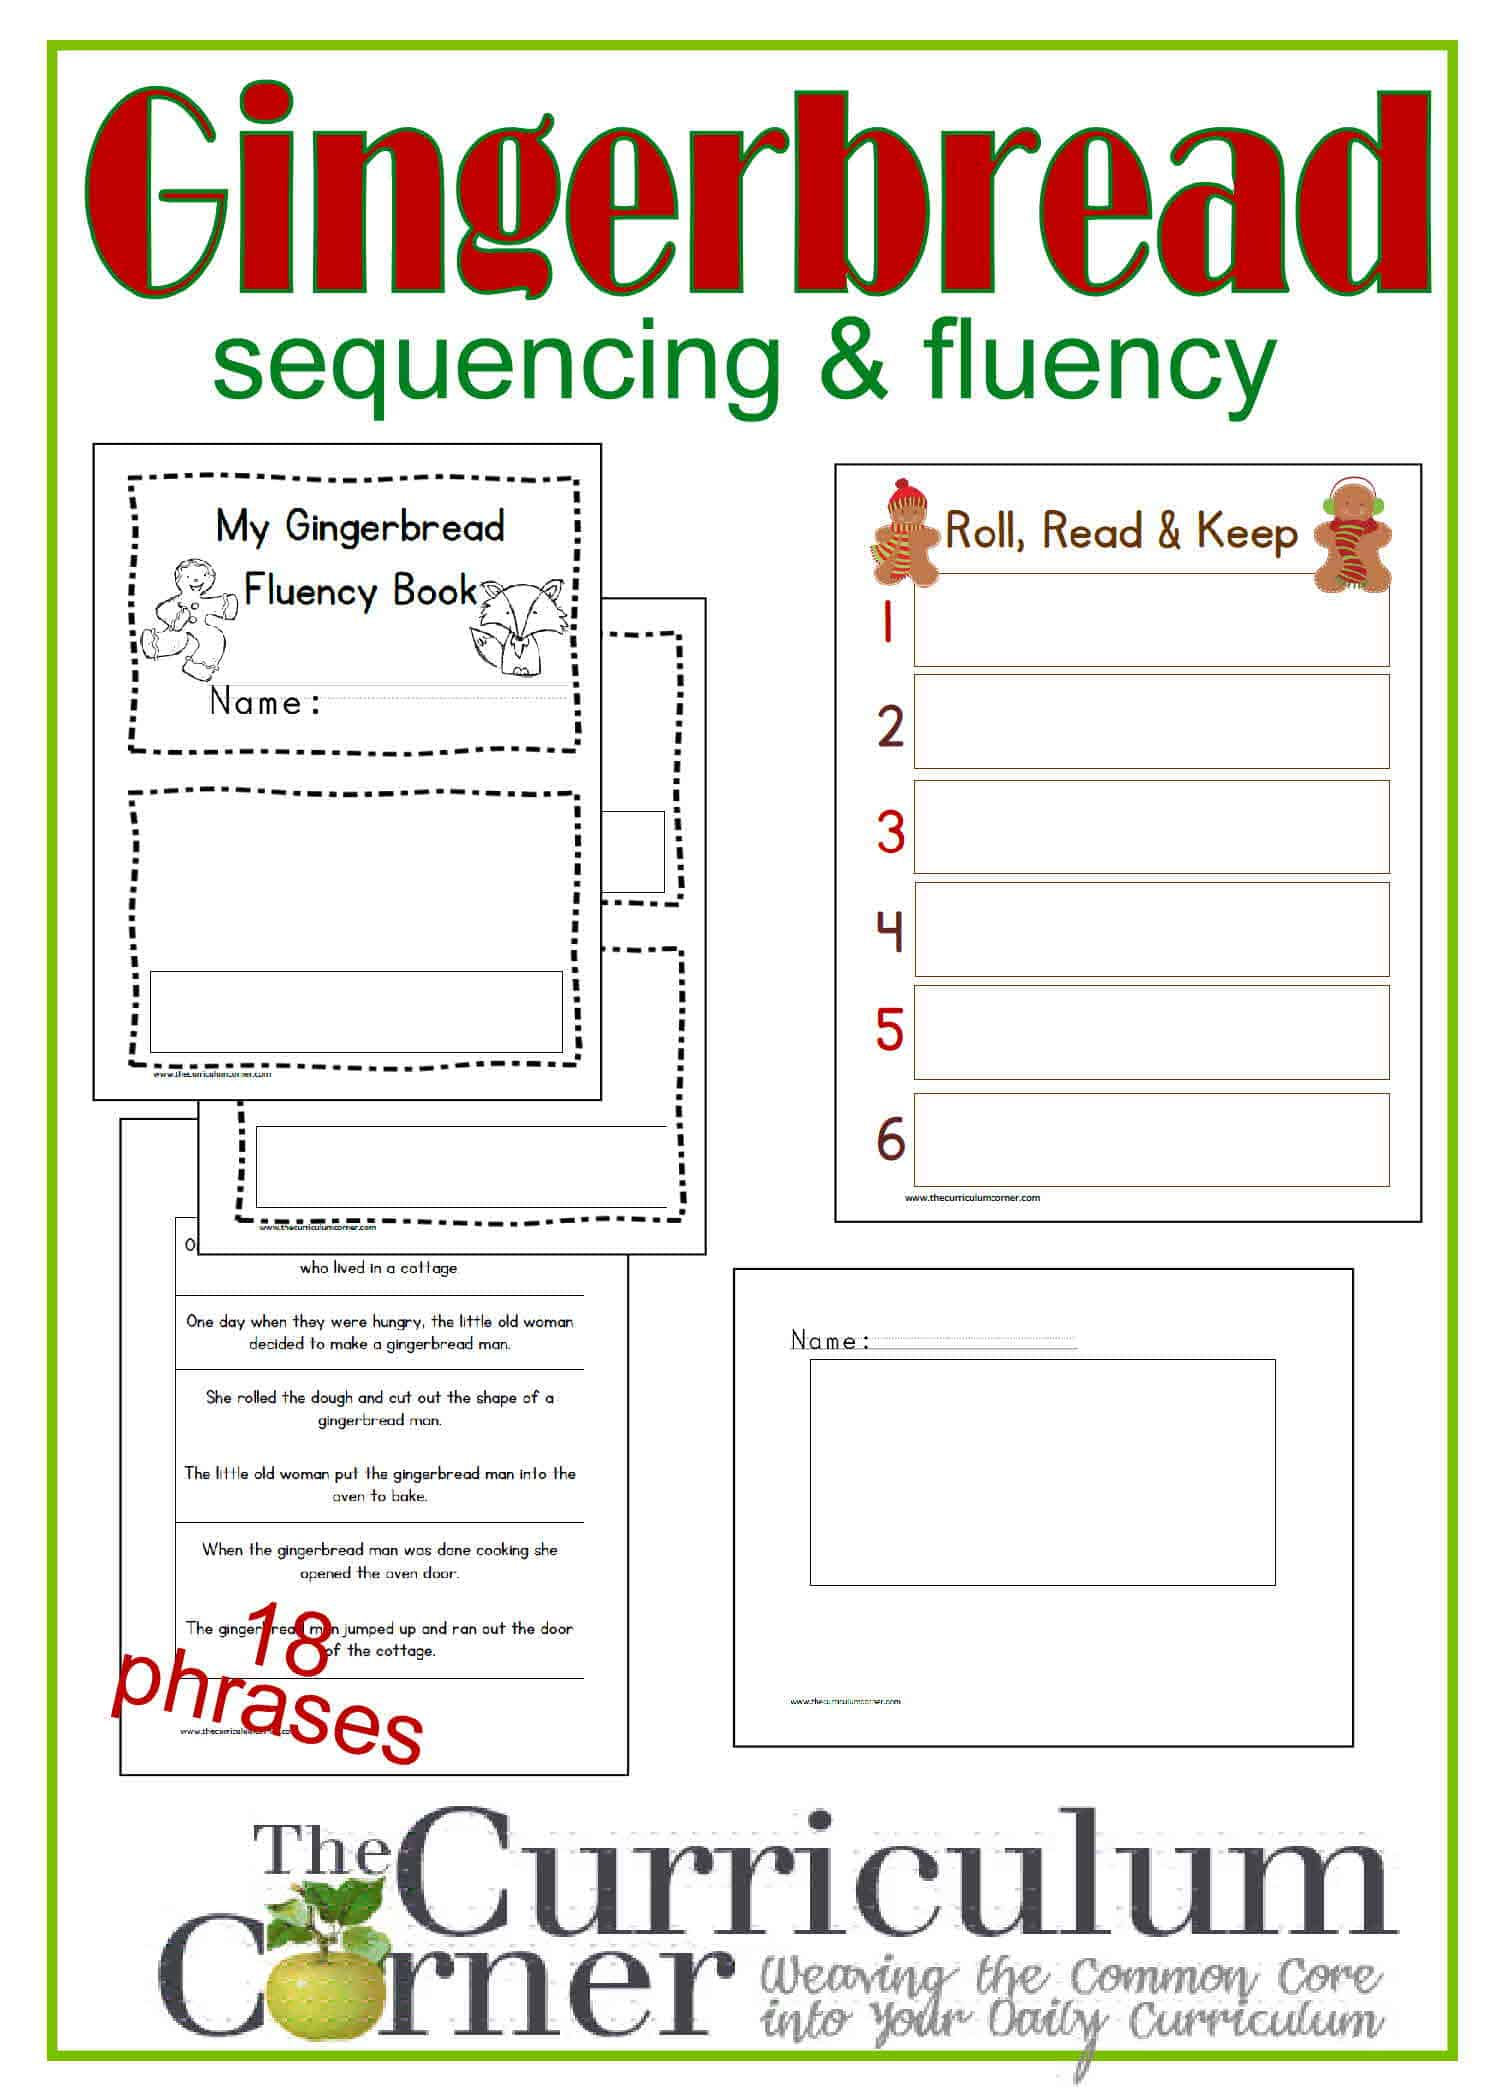 Sequencing & Fluency w/ The Gingerbread Man - The Curriculum Corner ...